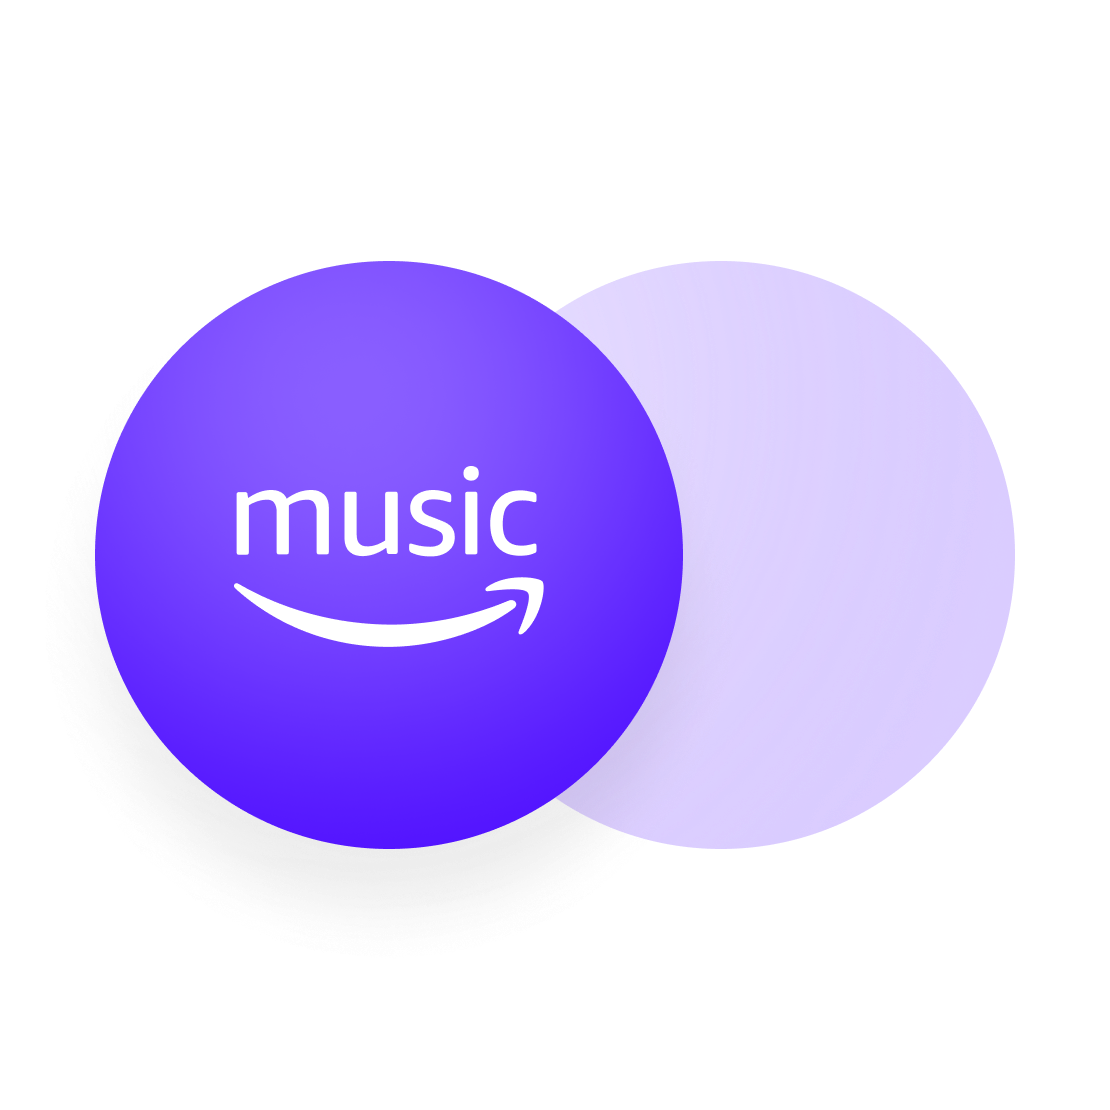 Amazon Music Logo - Amazon Music